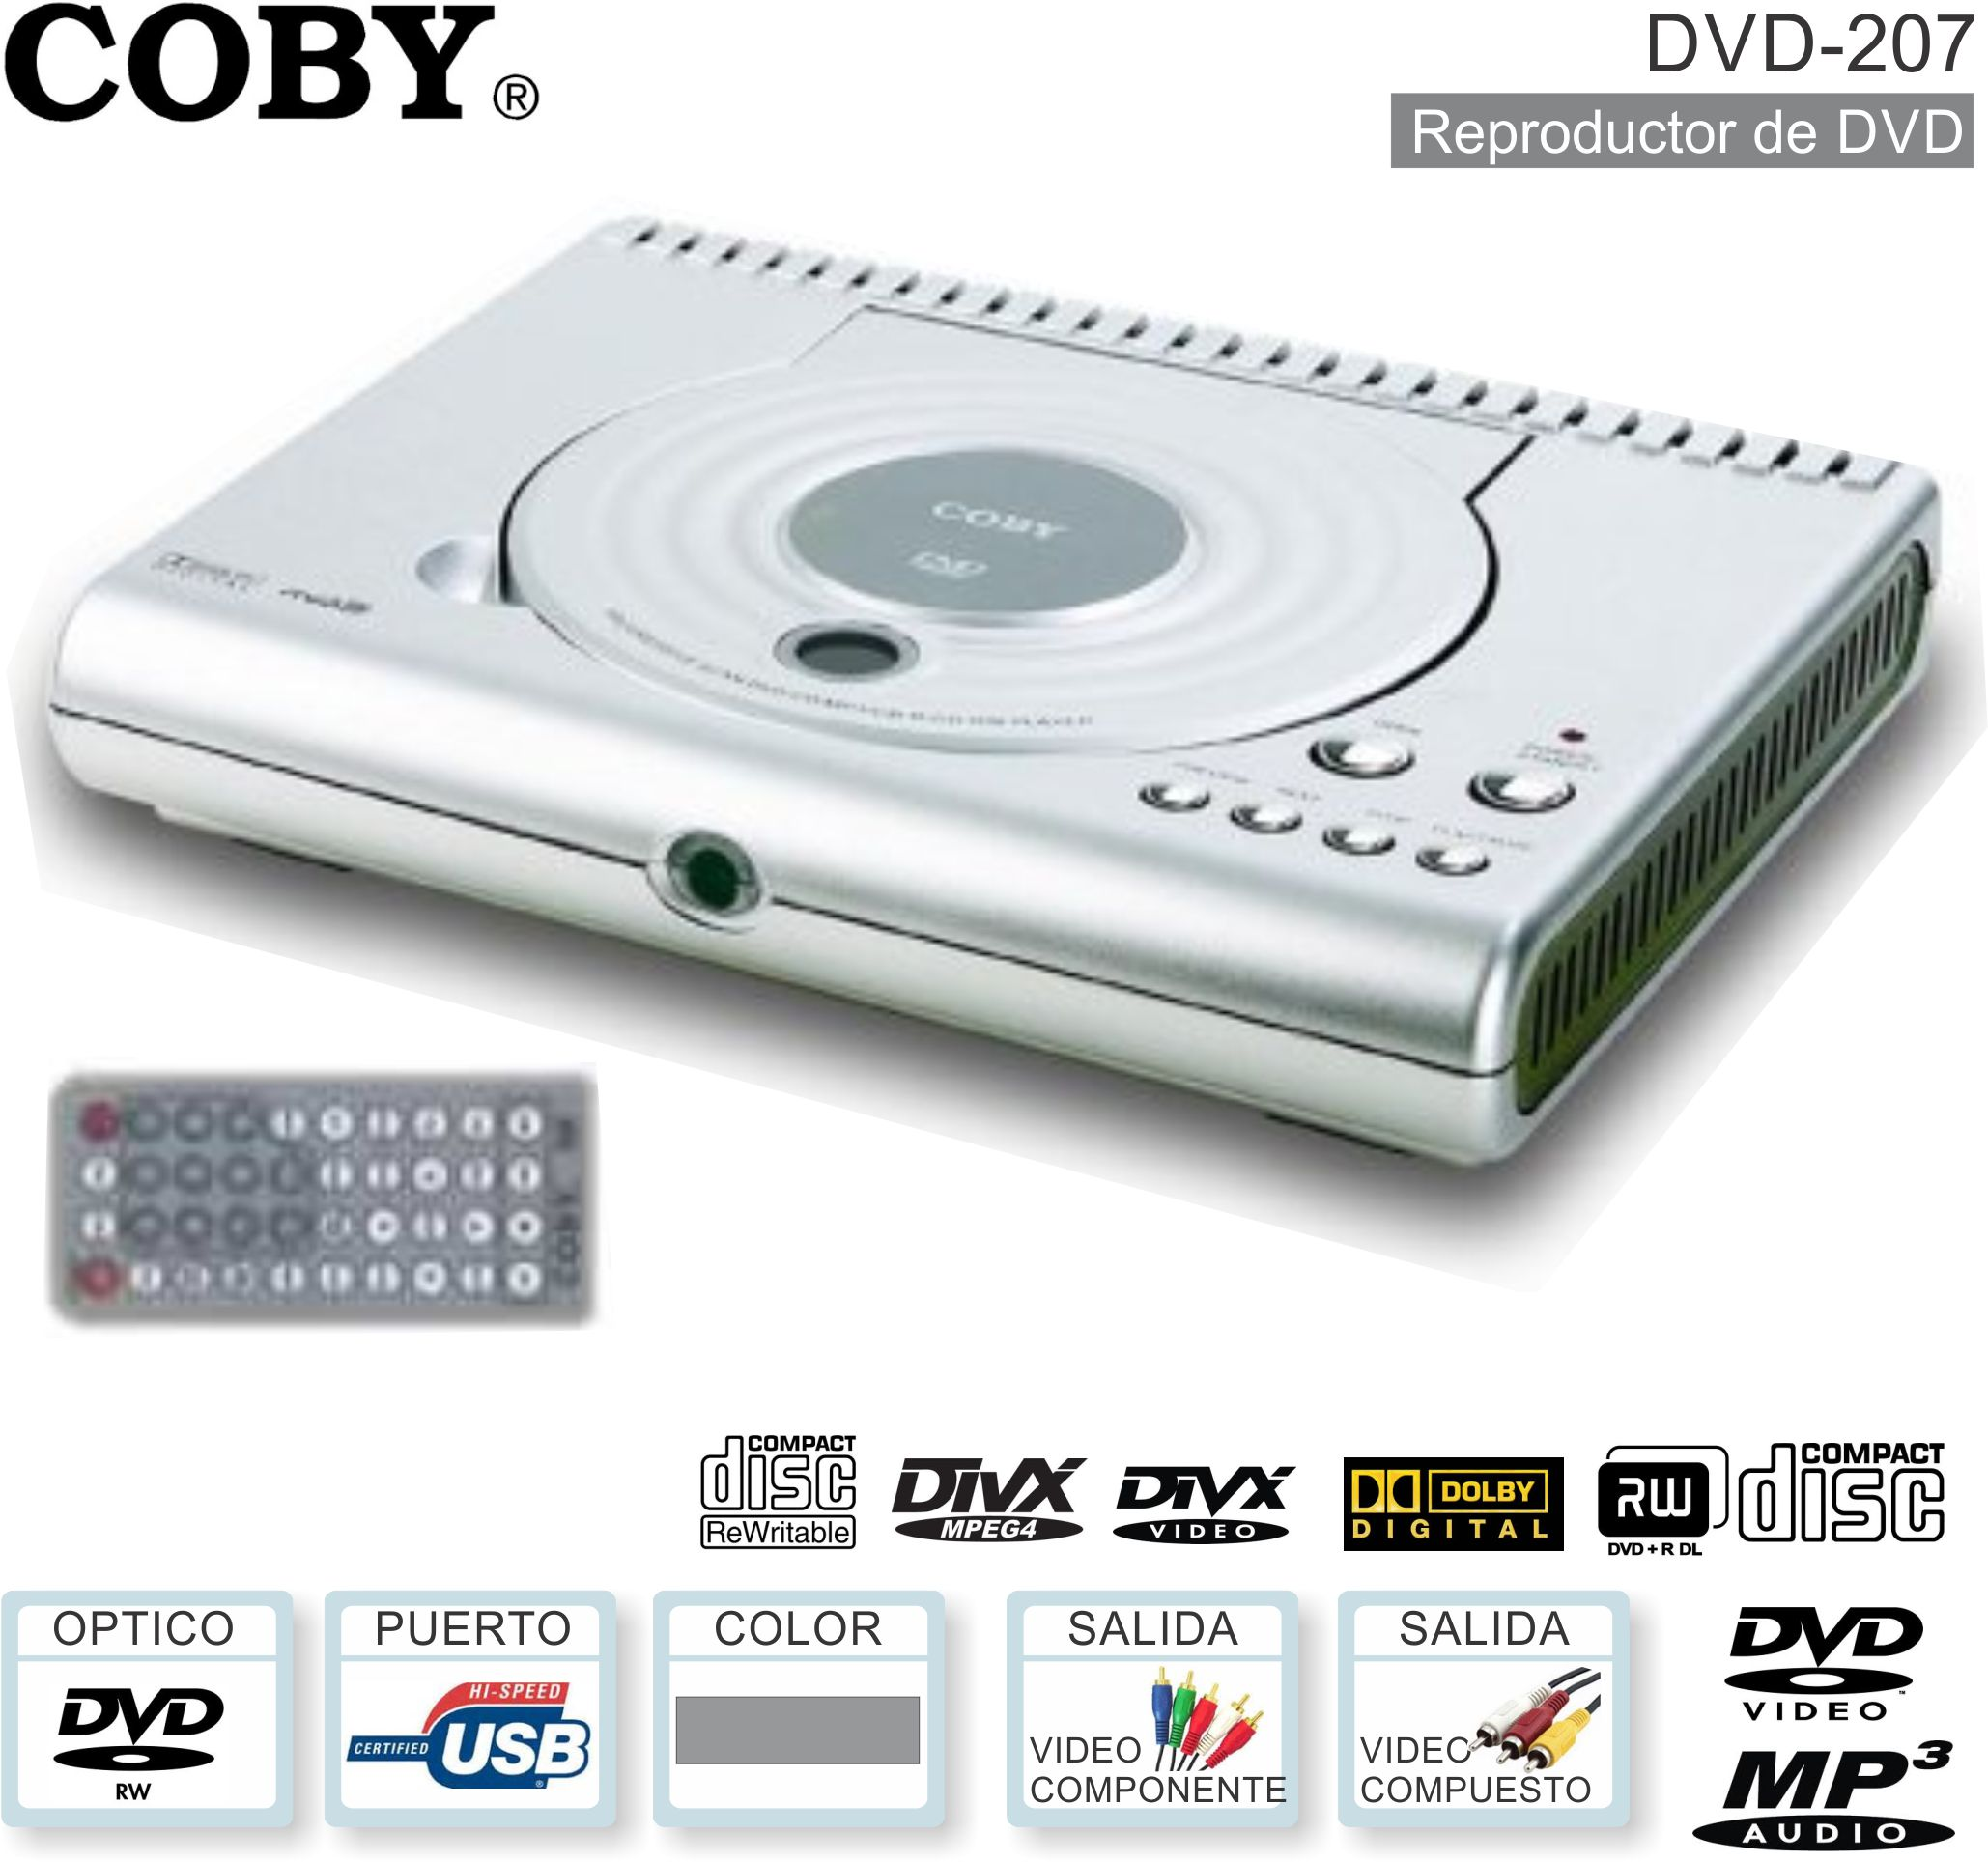 Reproductor DVD COBY DVD-207